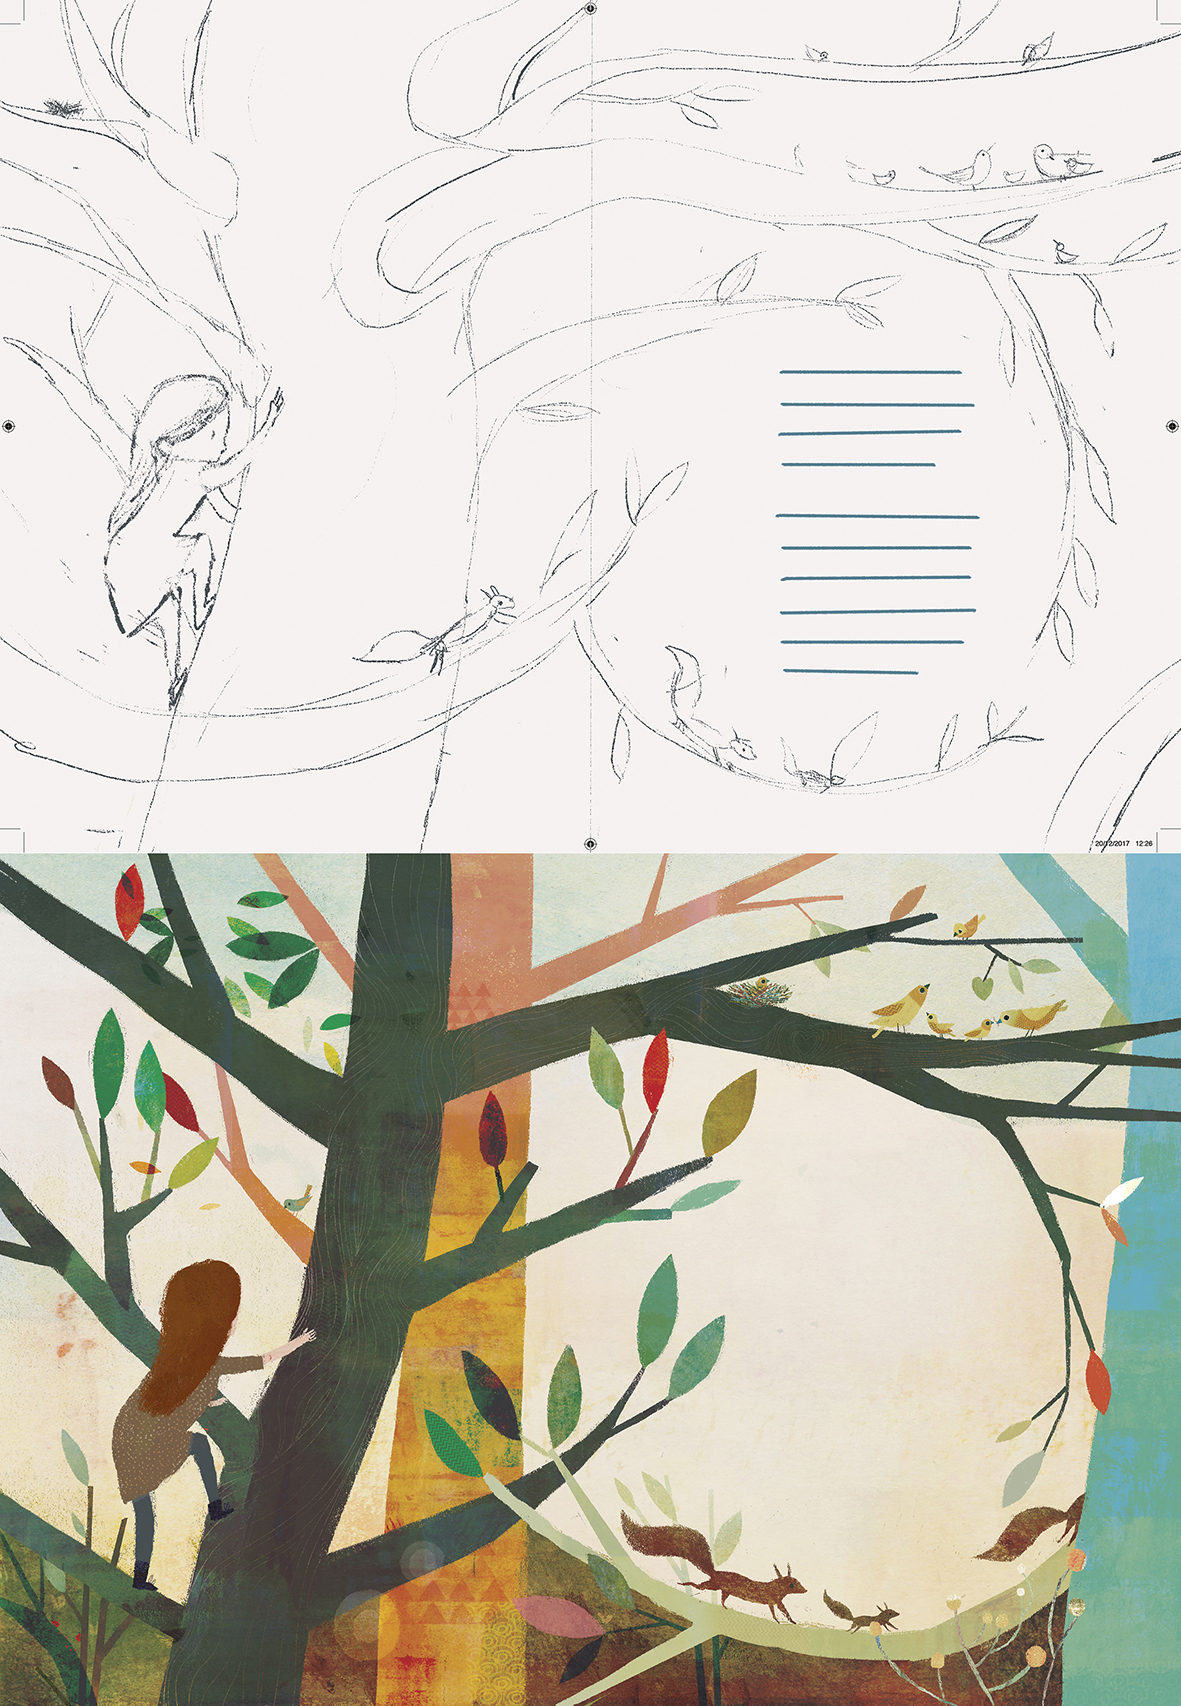 Finally, I think this is my favourite spread from our story. I like the soft curve of the branches around the type and the contrasting colours of the trees. As is usual for a project of this nature, there were several versions along the way, however, they mostly stayed true to the initial concept sketch. The image at the top is my first pencil outline for the page with the final painted art below.